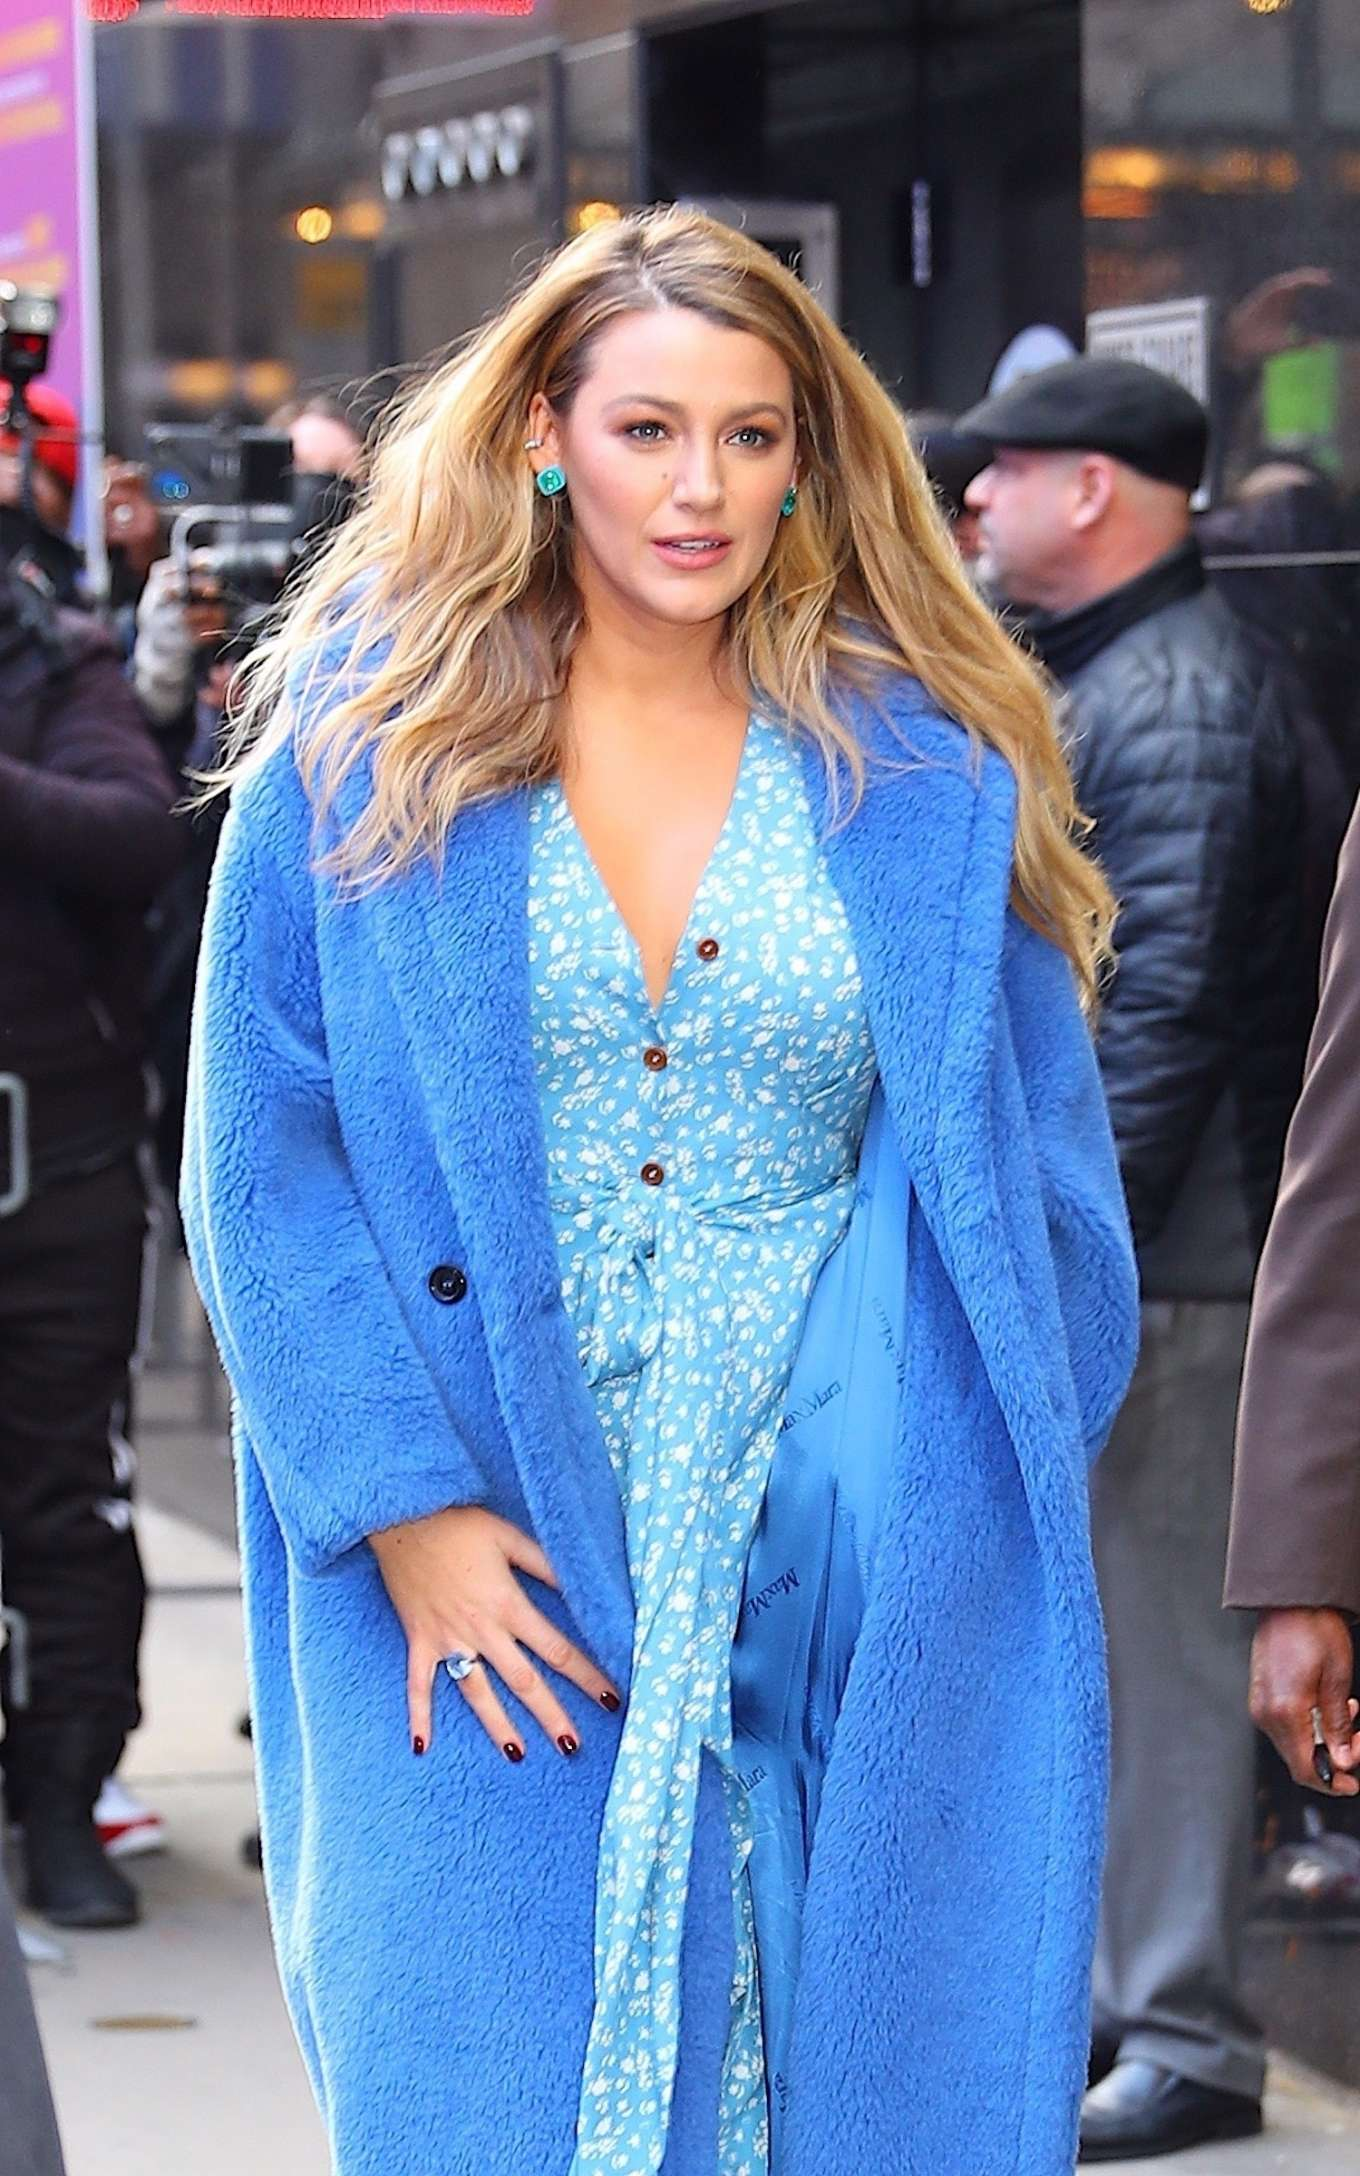 Blake Lively - Leaving Good Morning America in New York City